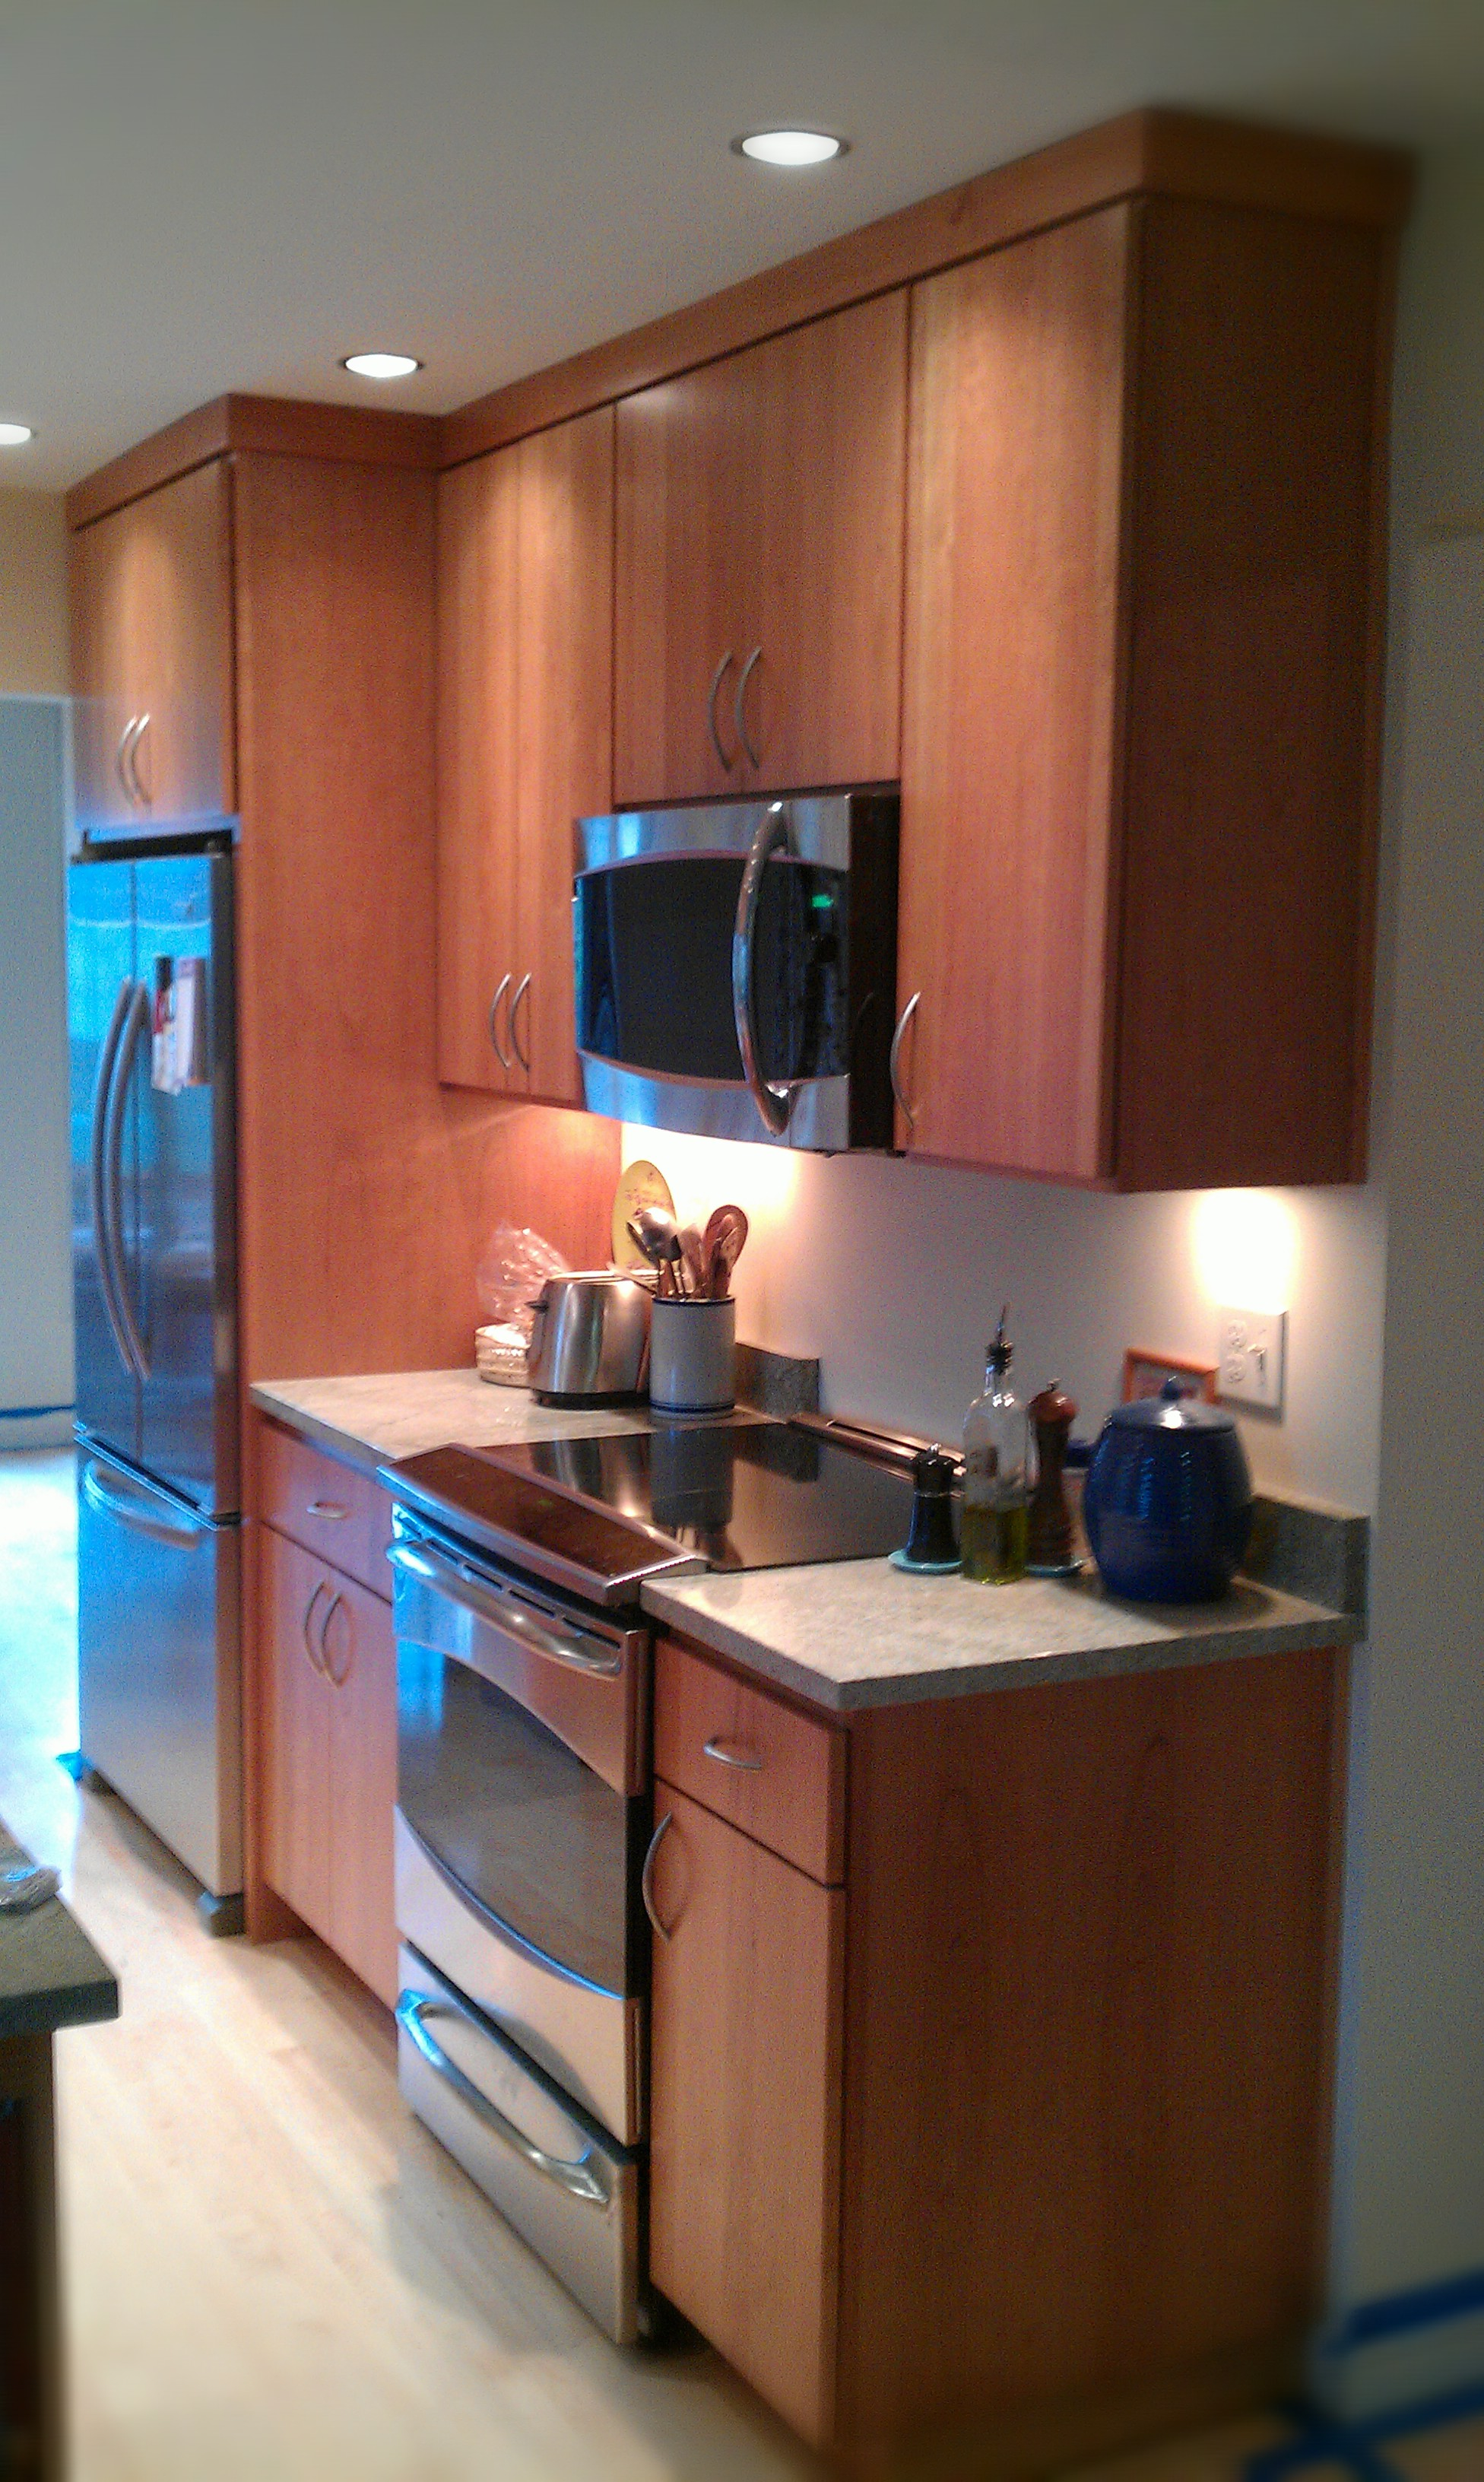 Kitchens R us Cherry cabinets with a solid slab mid century